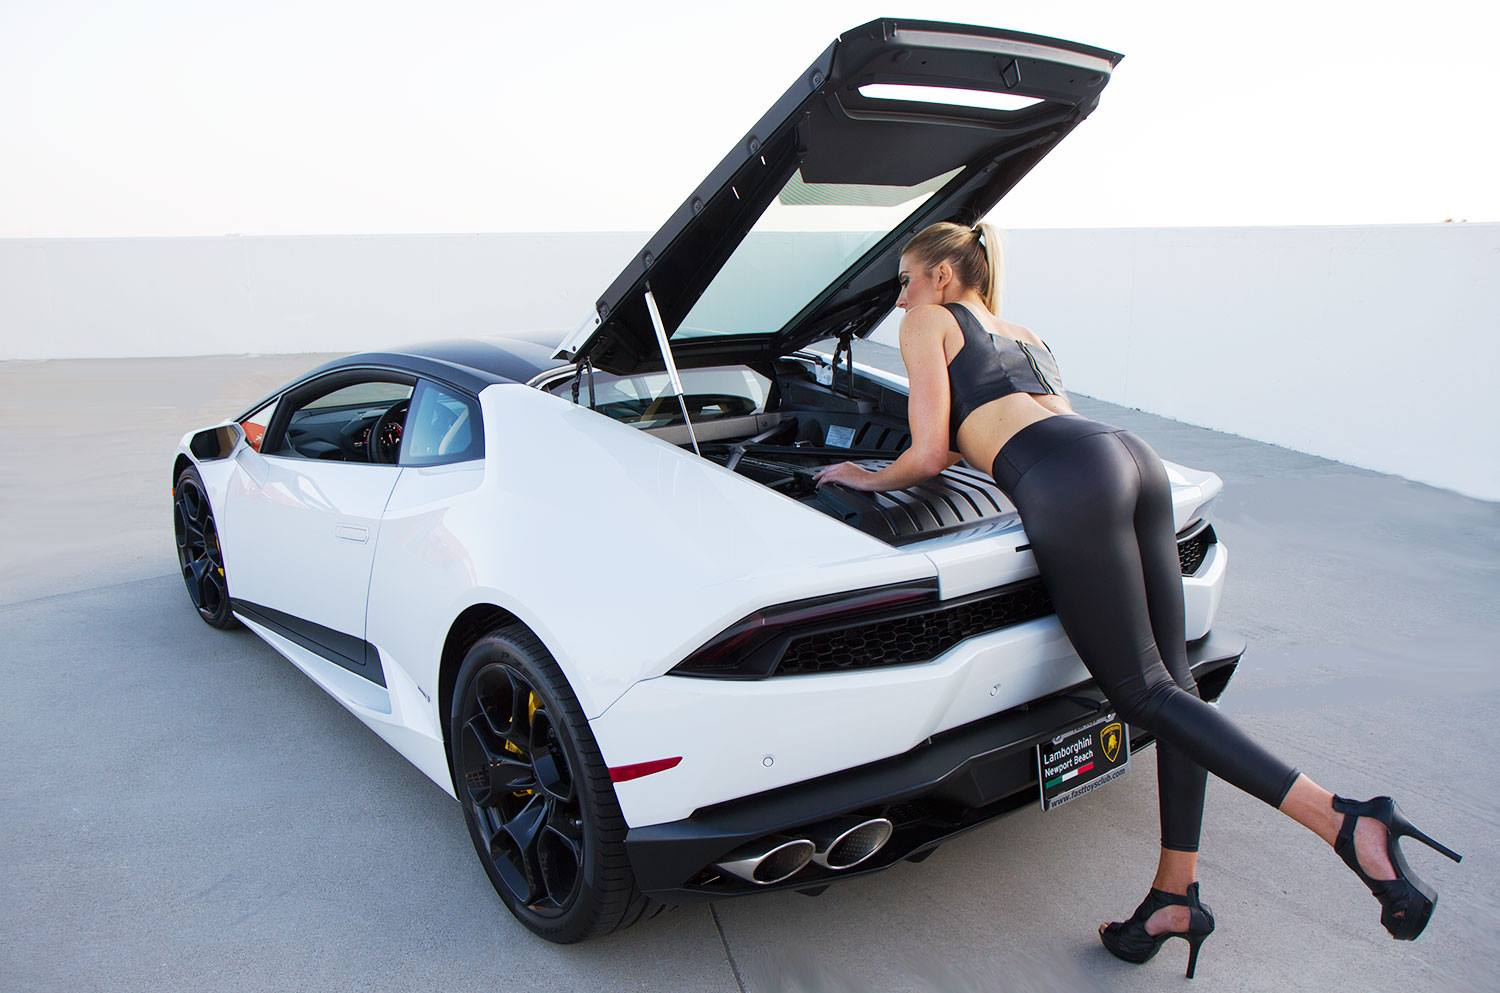 Your Lamborghini Huracan and Blonde Model Fantasy Photos Are